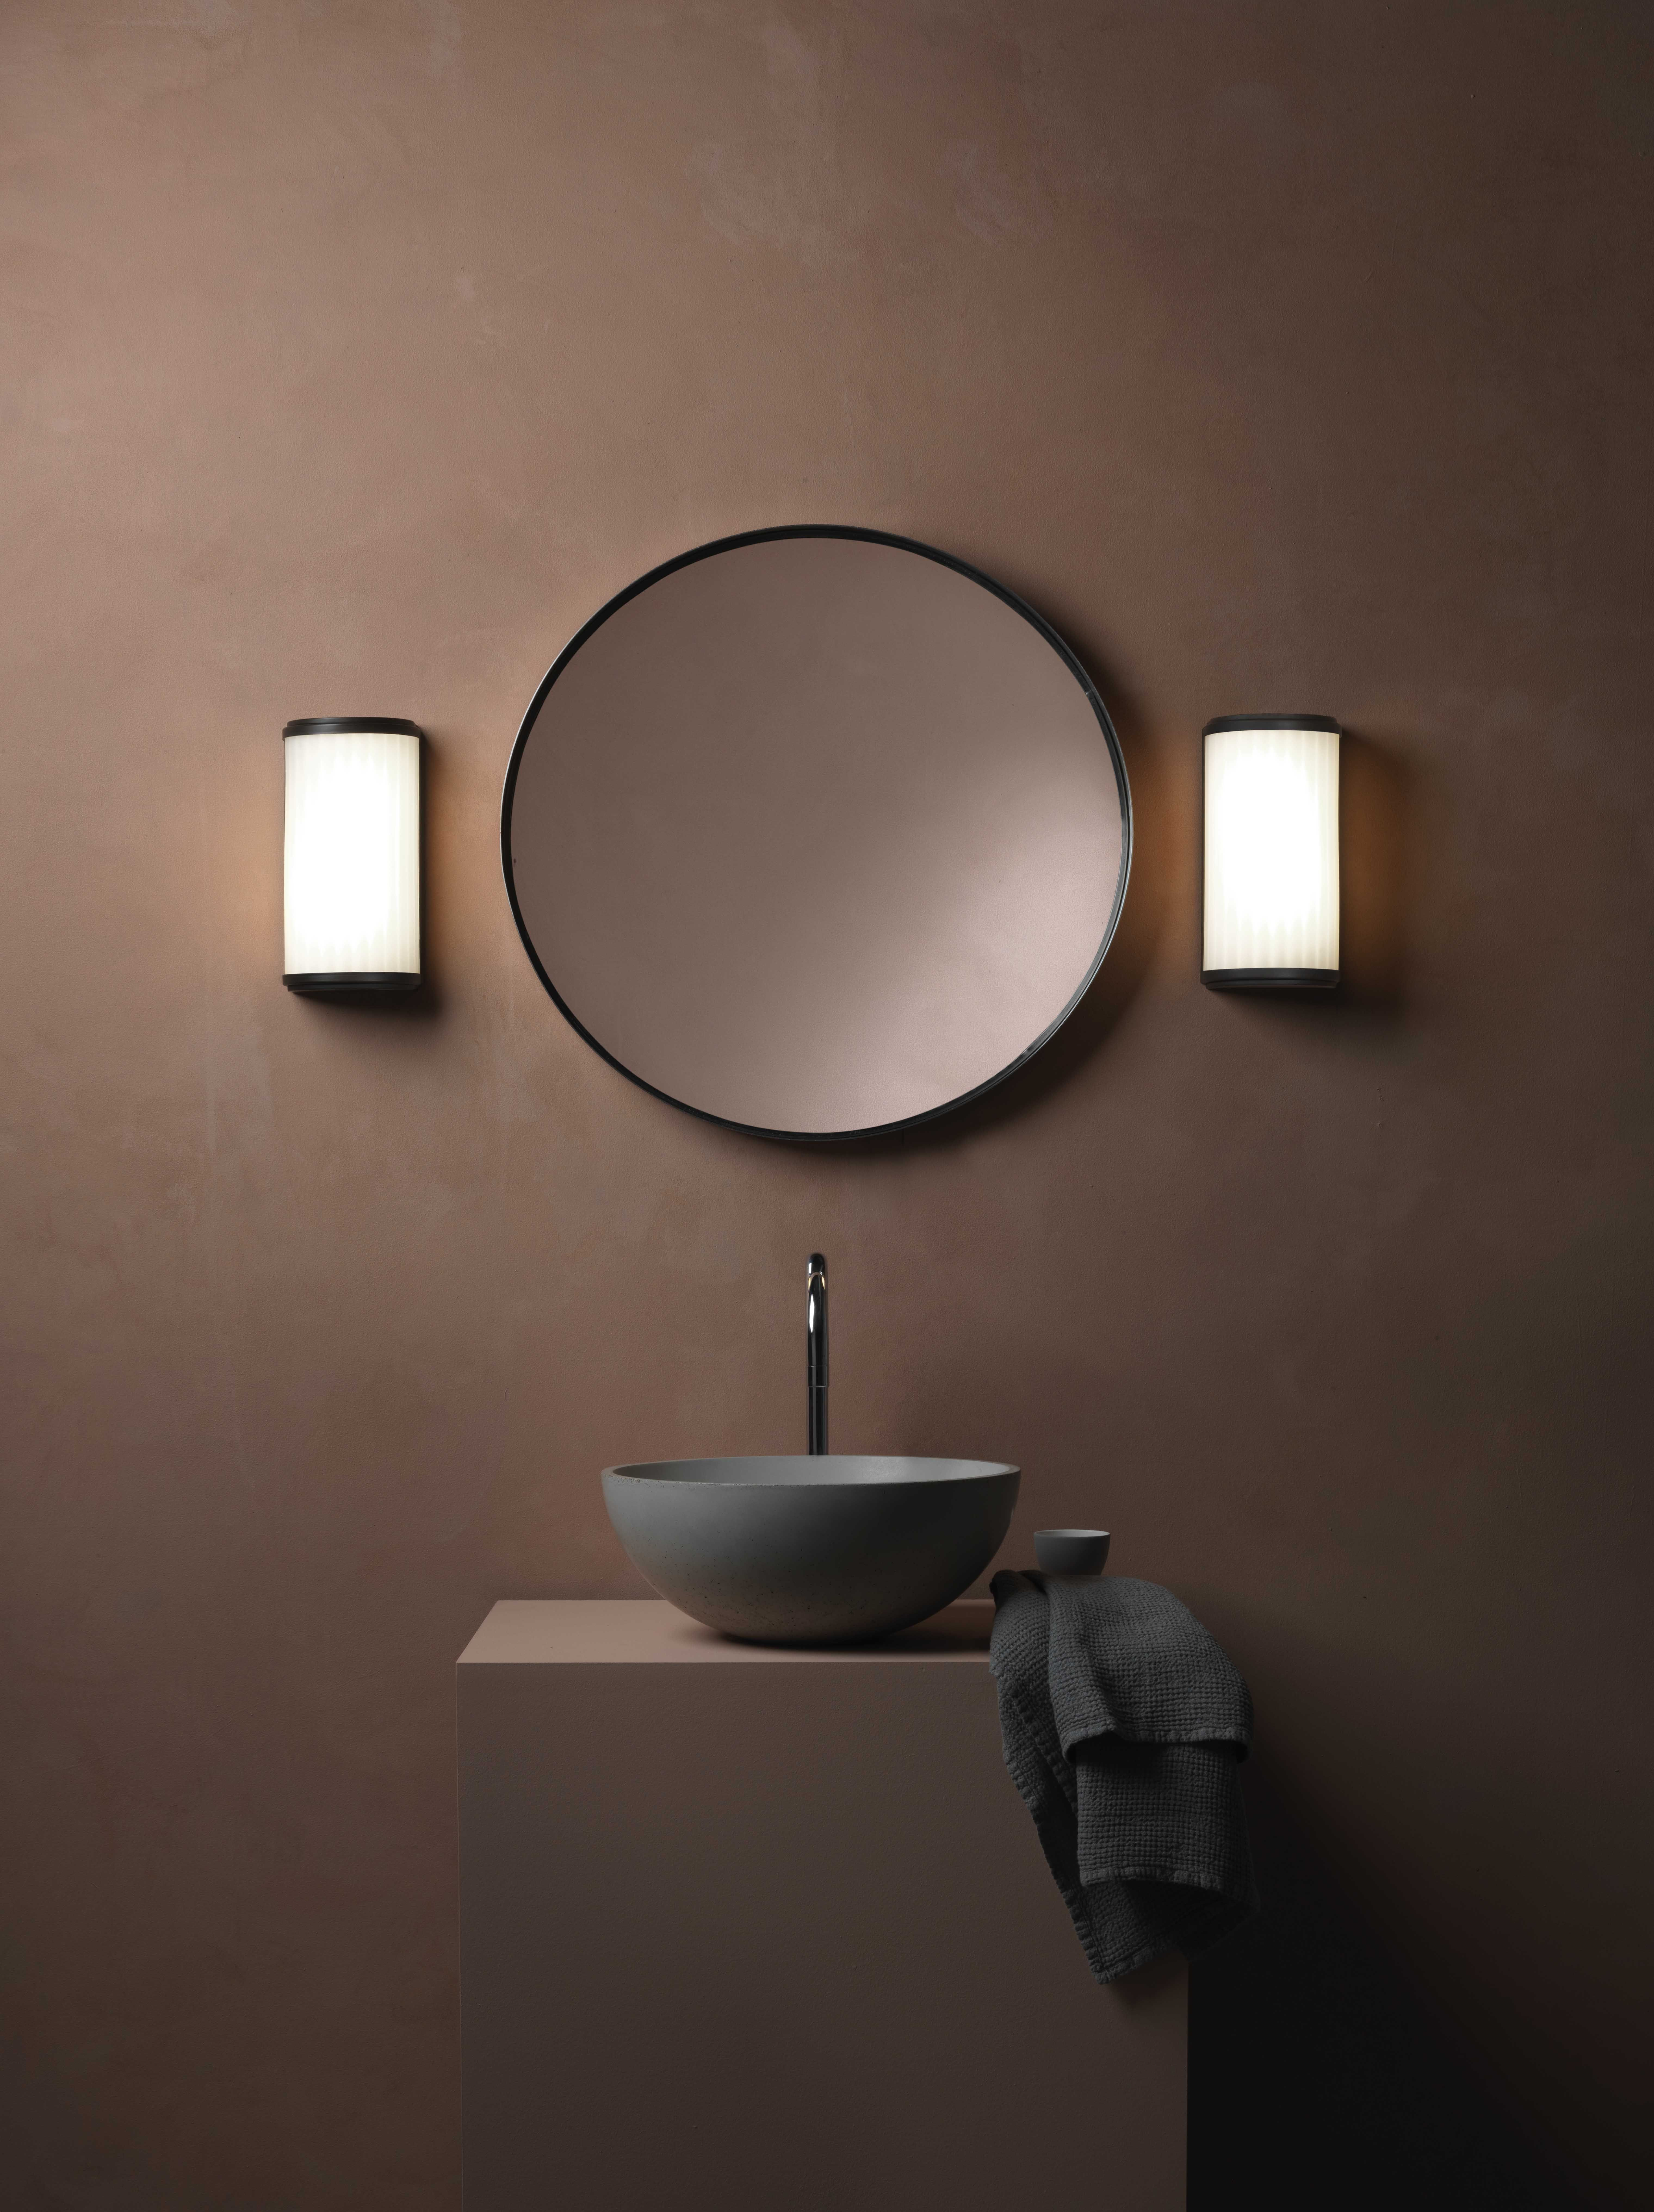 The Monza Bathroom Led Wall Light By Astro Lighting